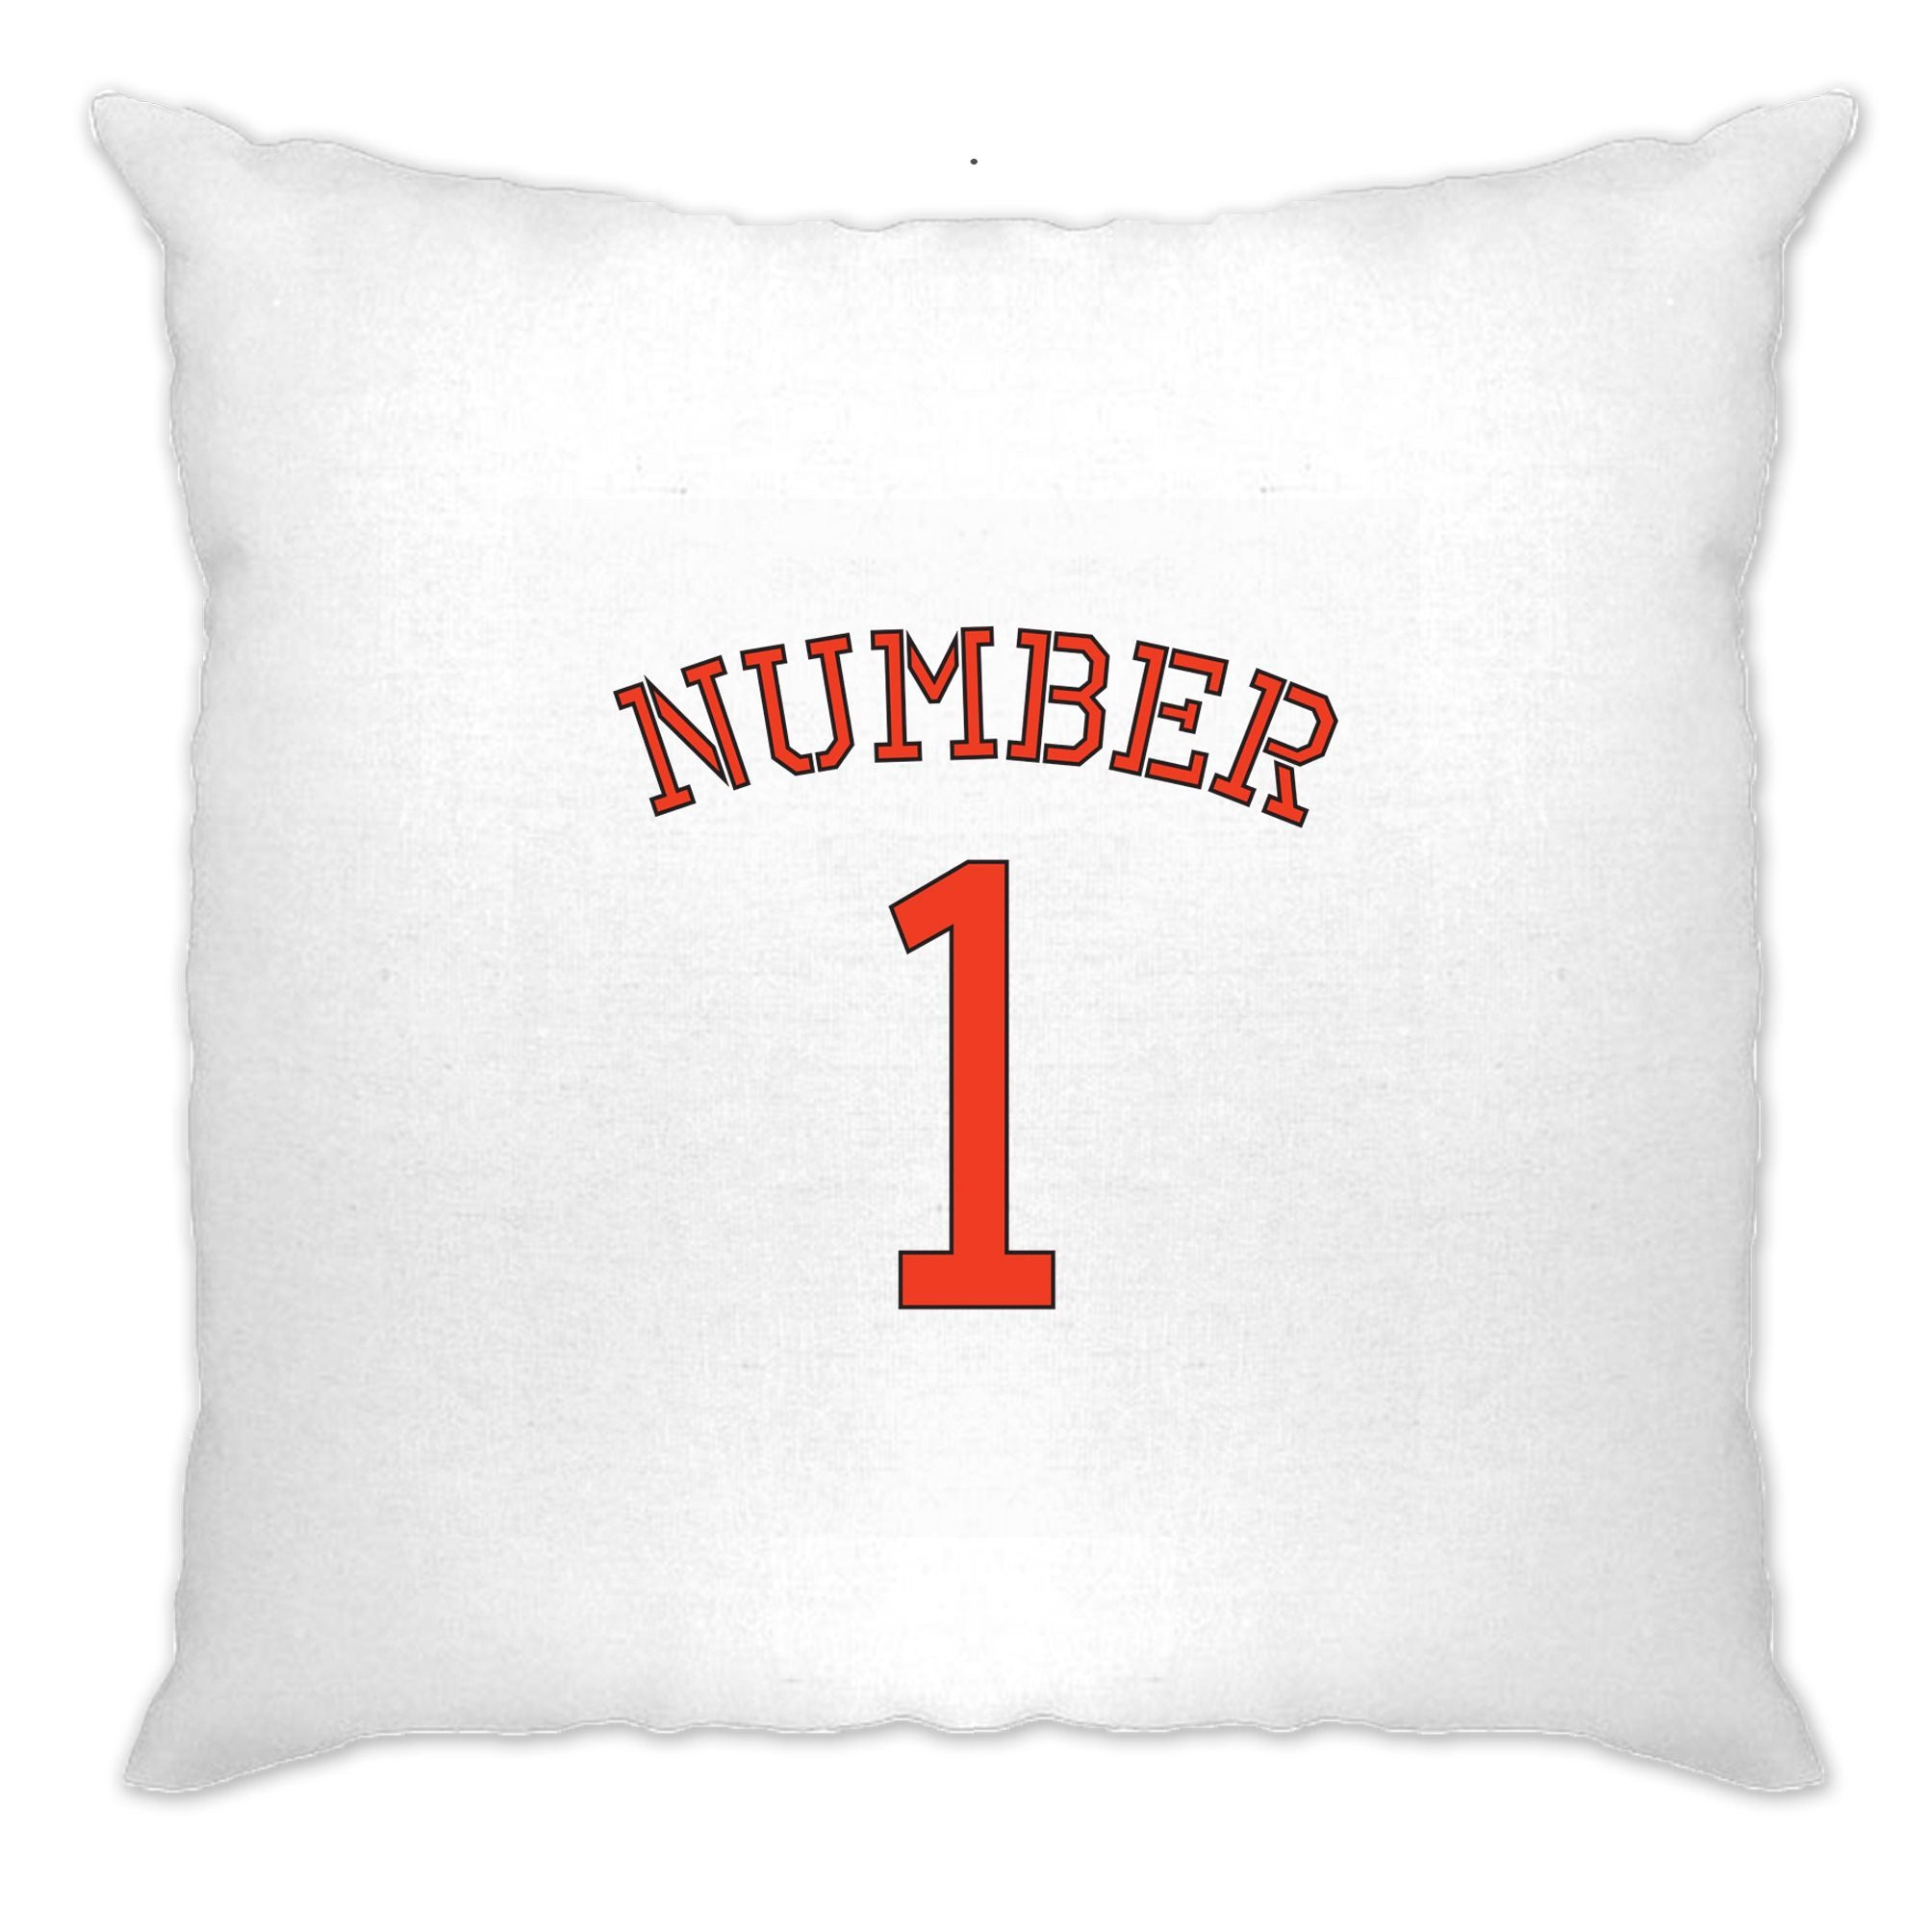 The Best Number One Champion Winner Cushion Cover